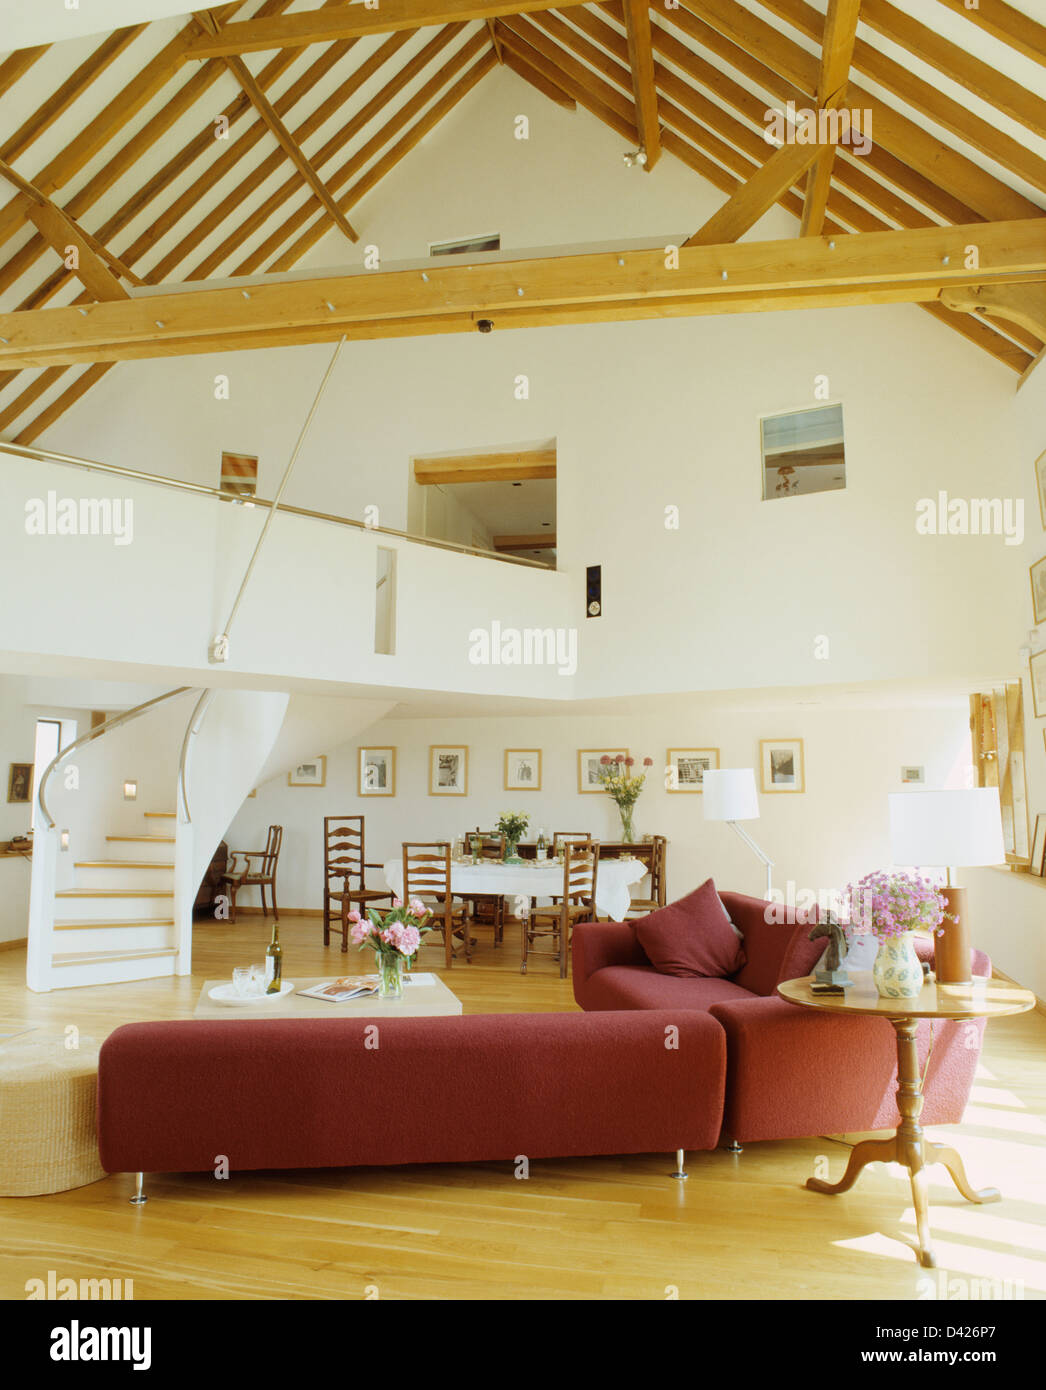 L Shaped Red Sofa And Wooden Flooring In Large Open Plan Living And Dining  Area In Barn Conversion With Beamed Apex Ceiling